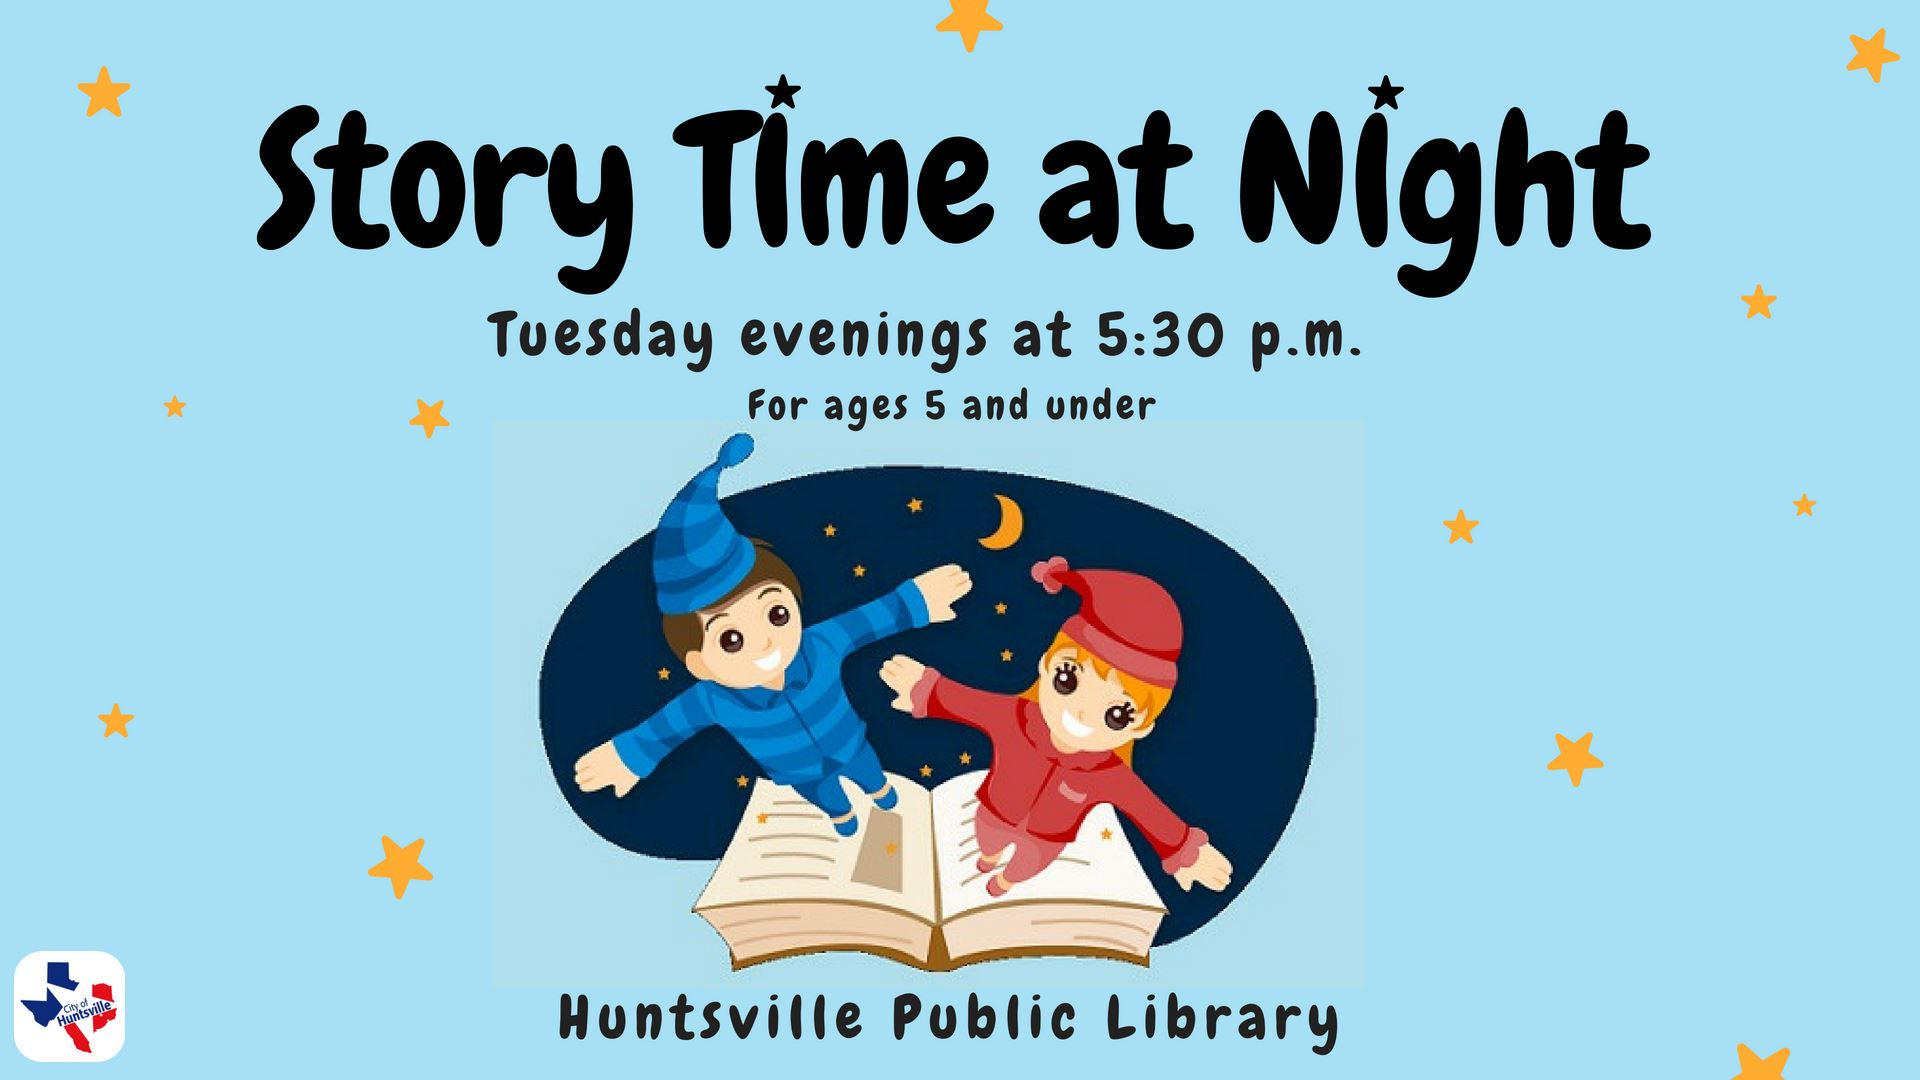 Story time at Night